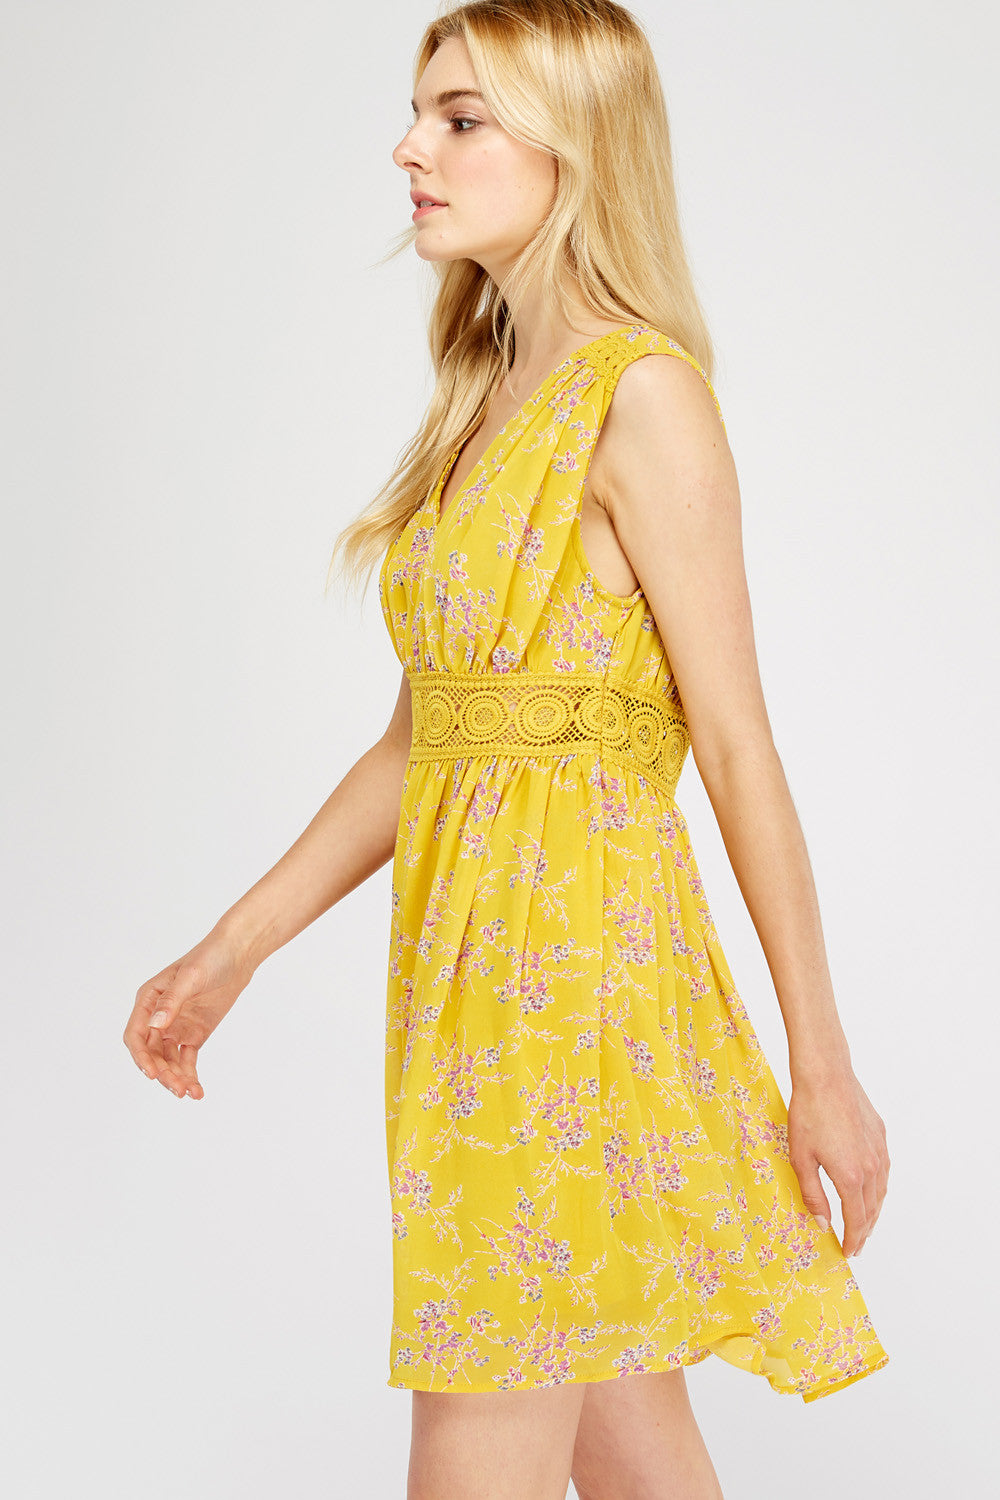 Trazo Dress - Yellow